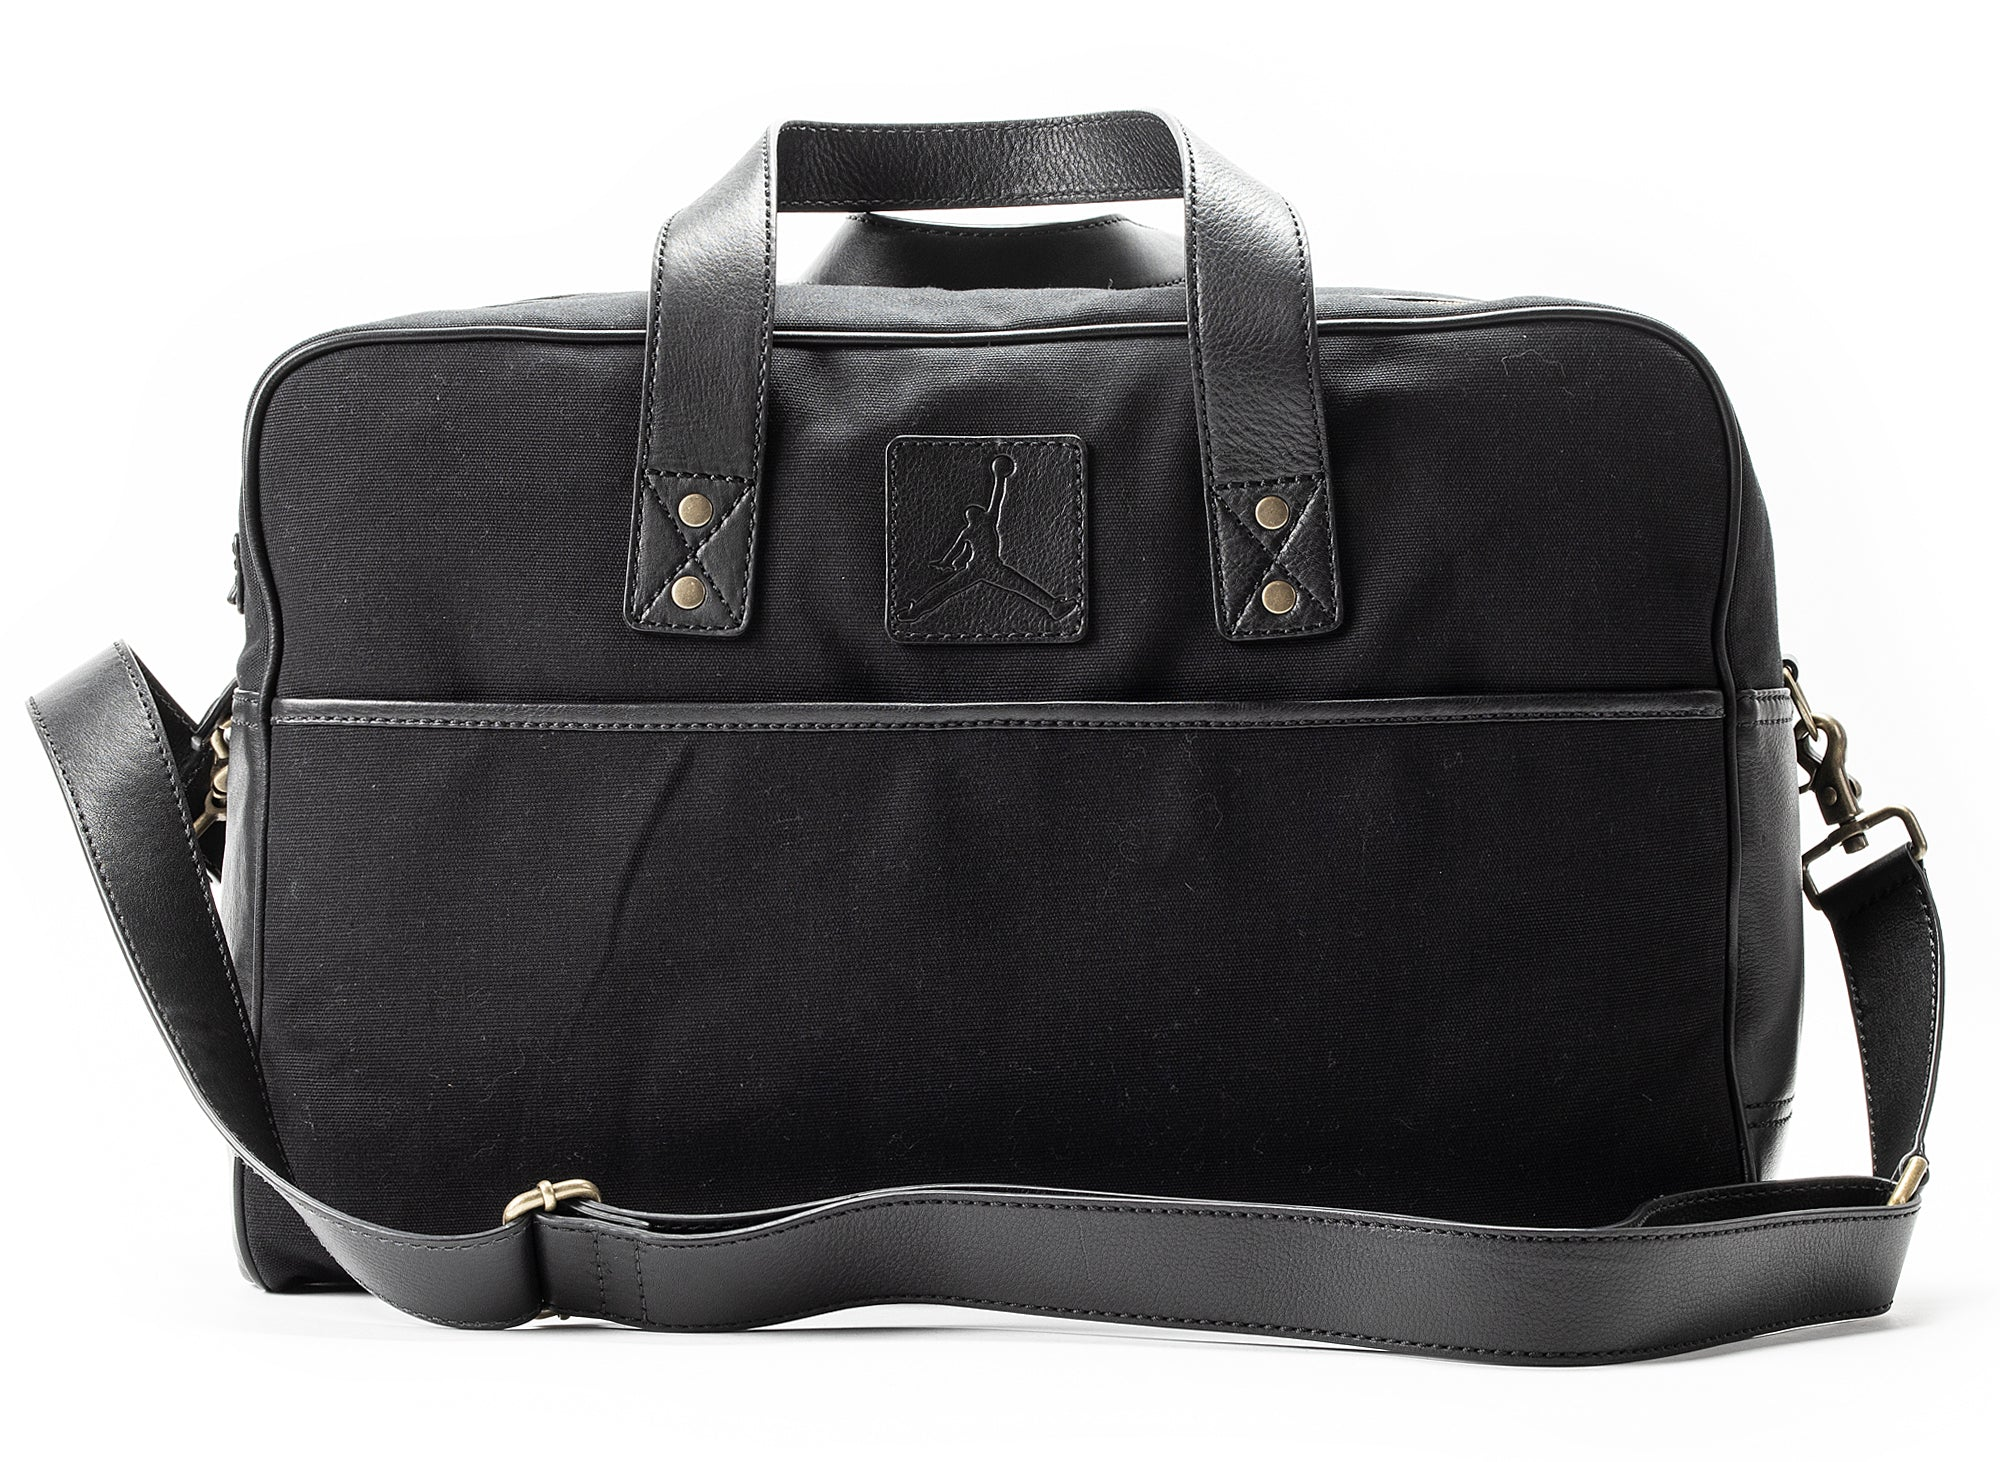 JORDAN x COLE HAAN travel bag